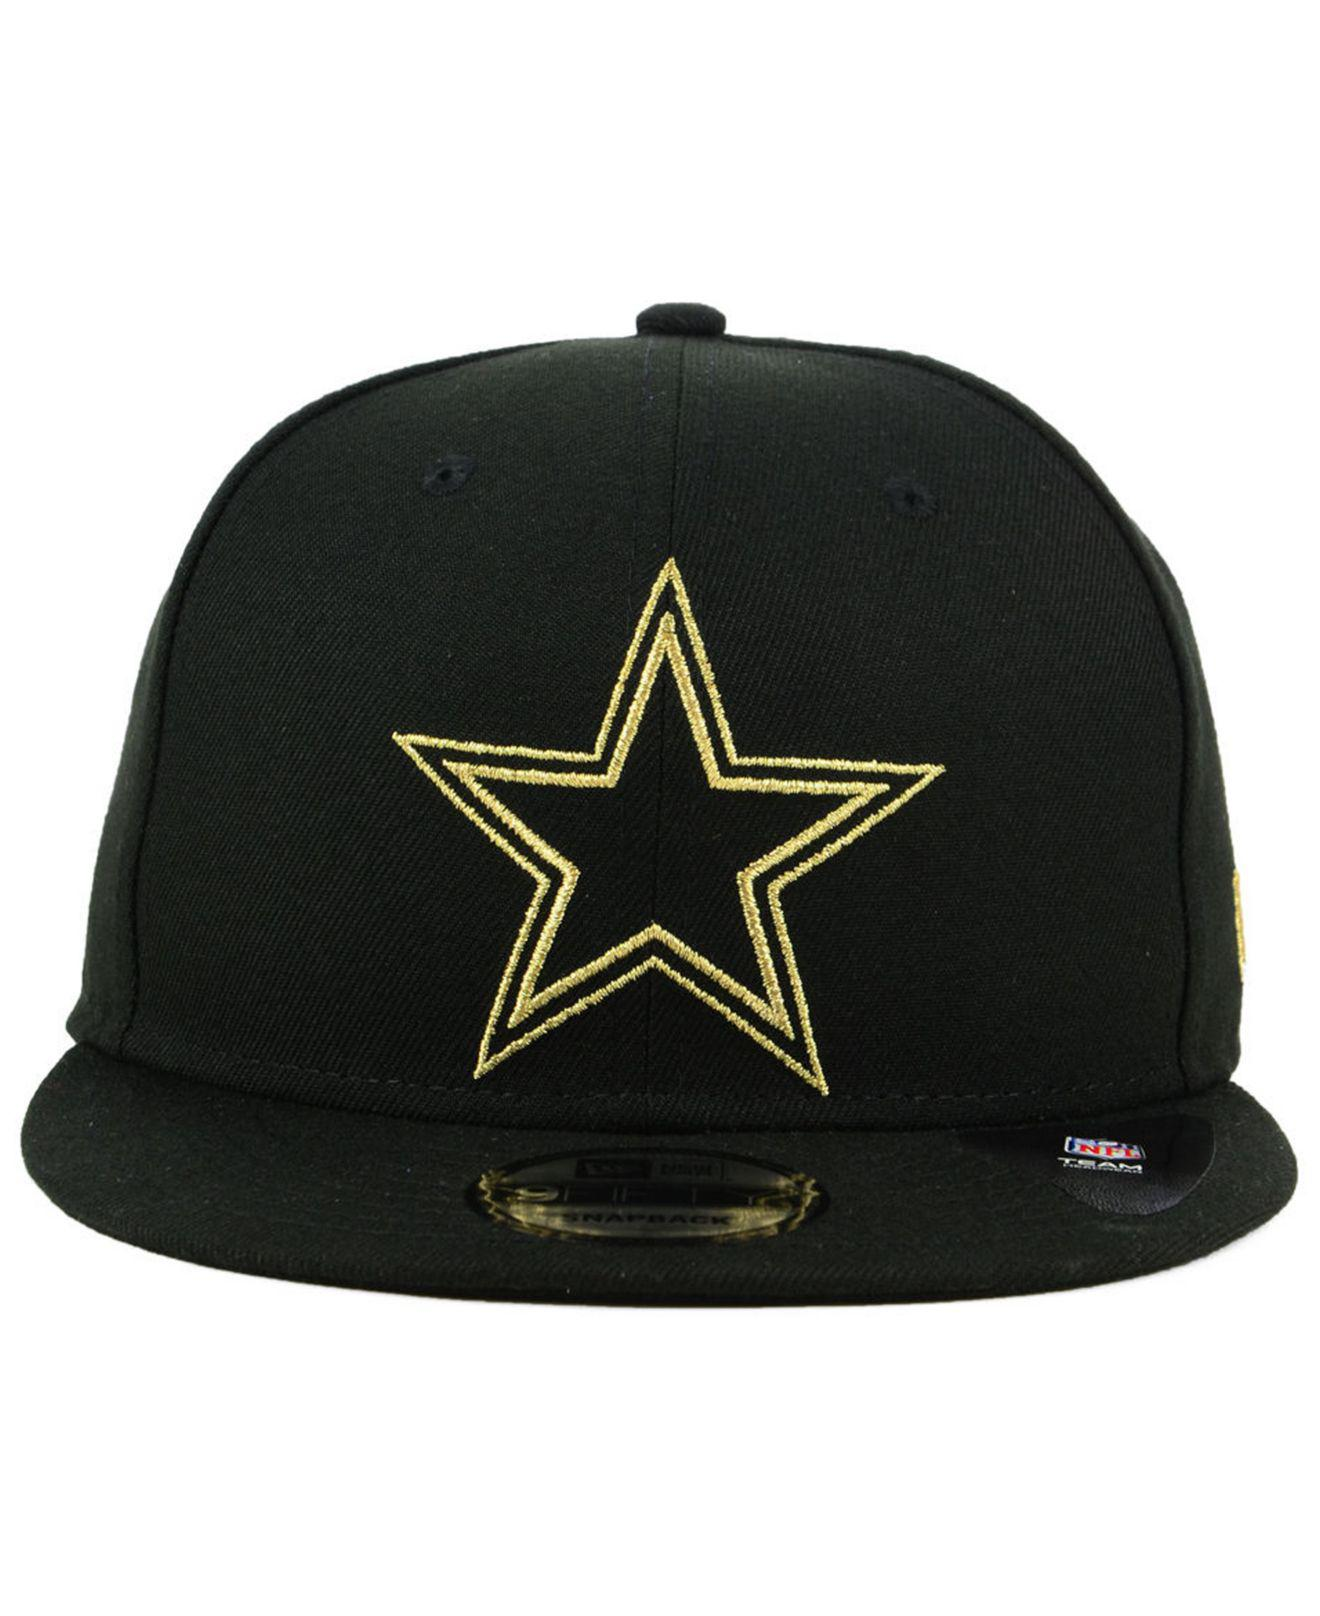 Lyst - KTZ Dallas Cowboys Tracer 9fifty Snapback Cap in Black for Men 07ee985491c